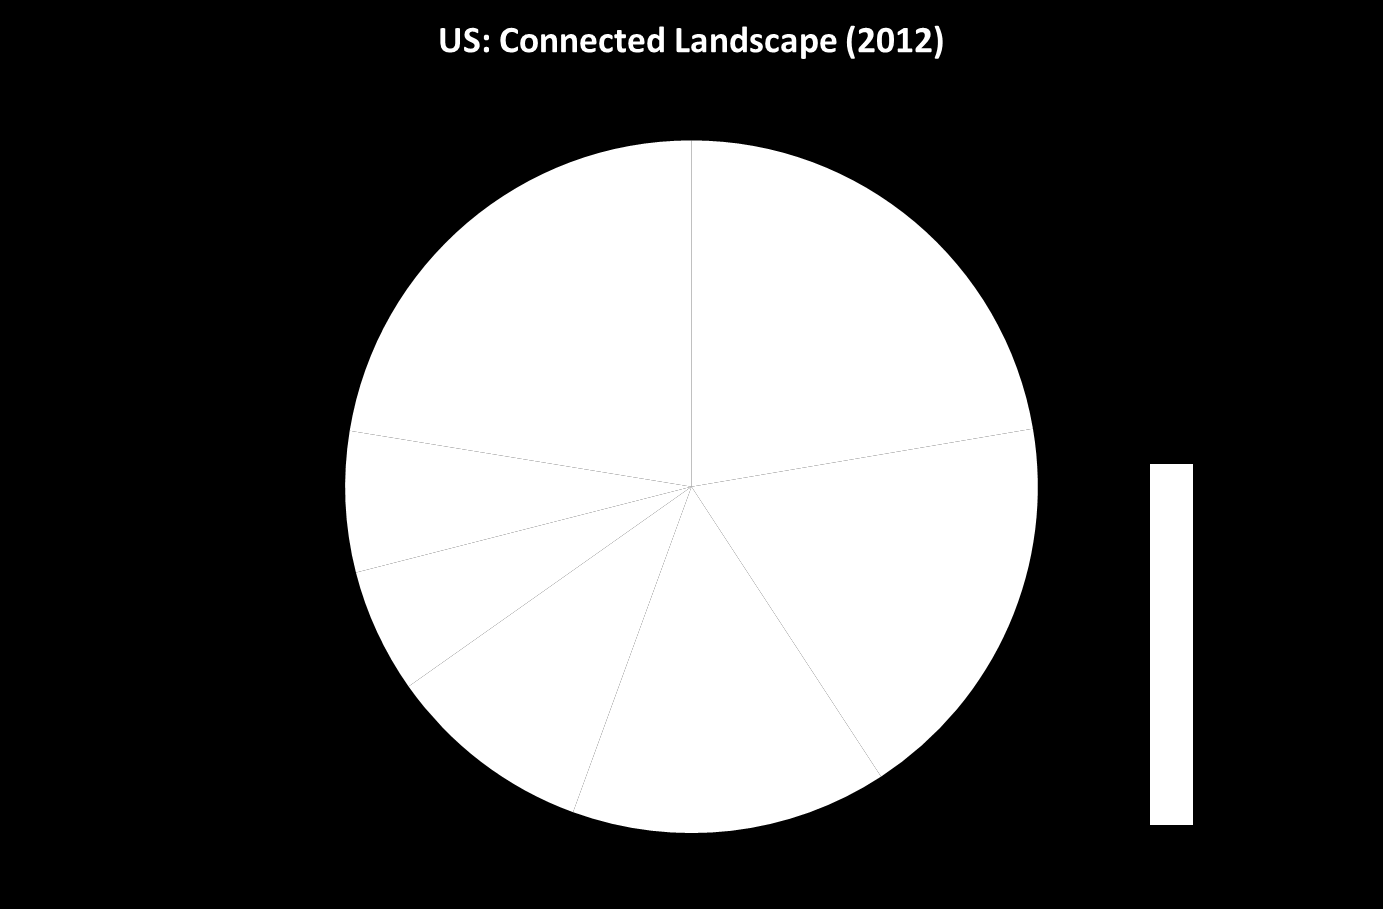 Figure 2. Connected Devices Landscape in the US (2012) 3 In 2012, the US mobile market grew 42% overall from 2009 with the device segment growing 152%.